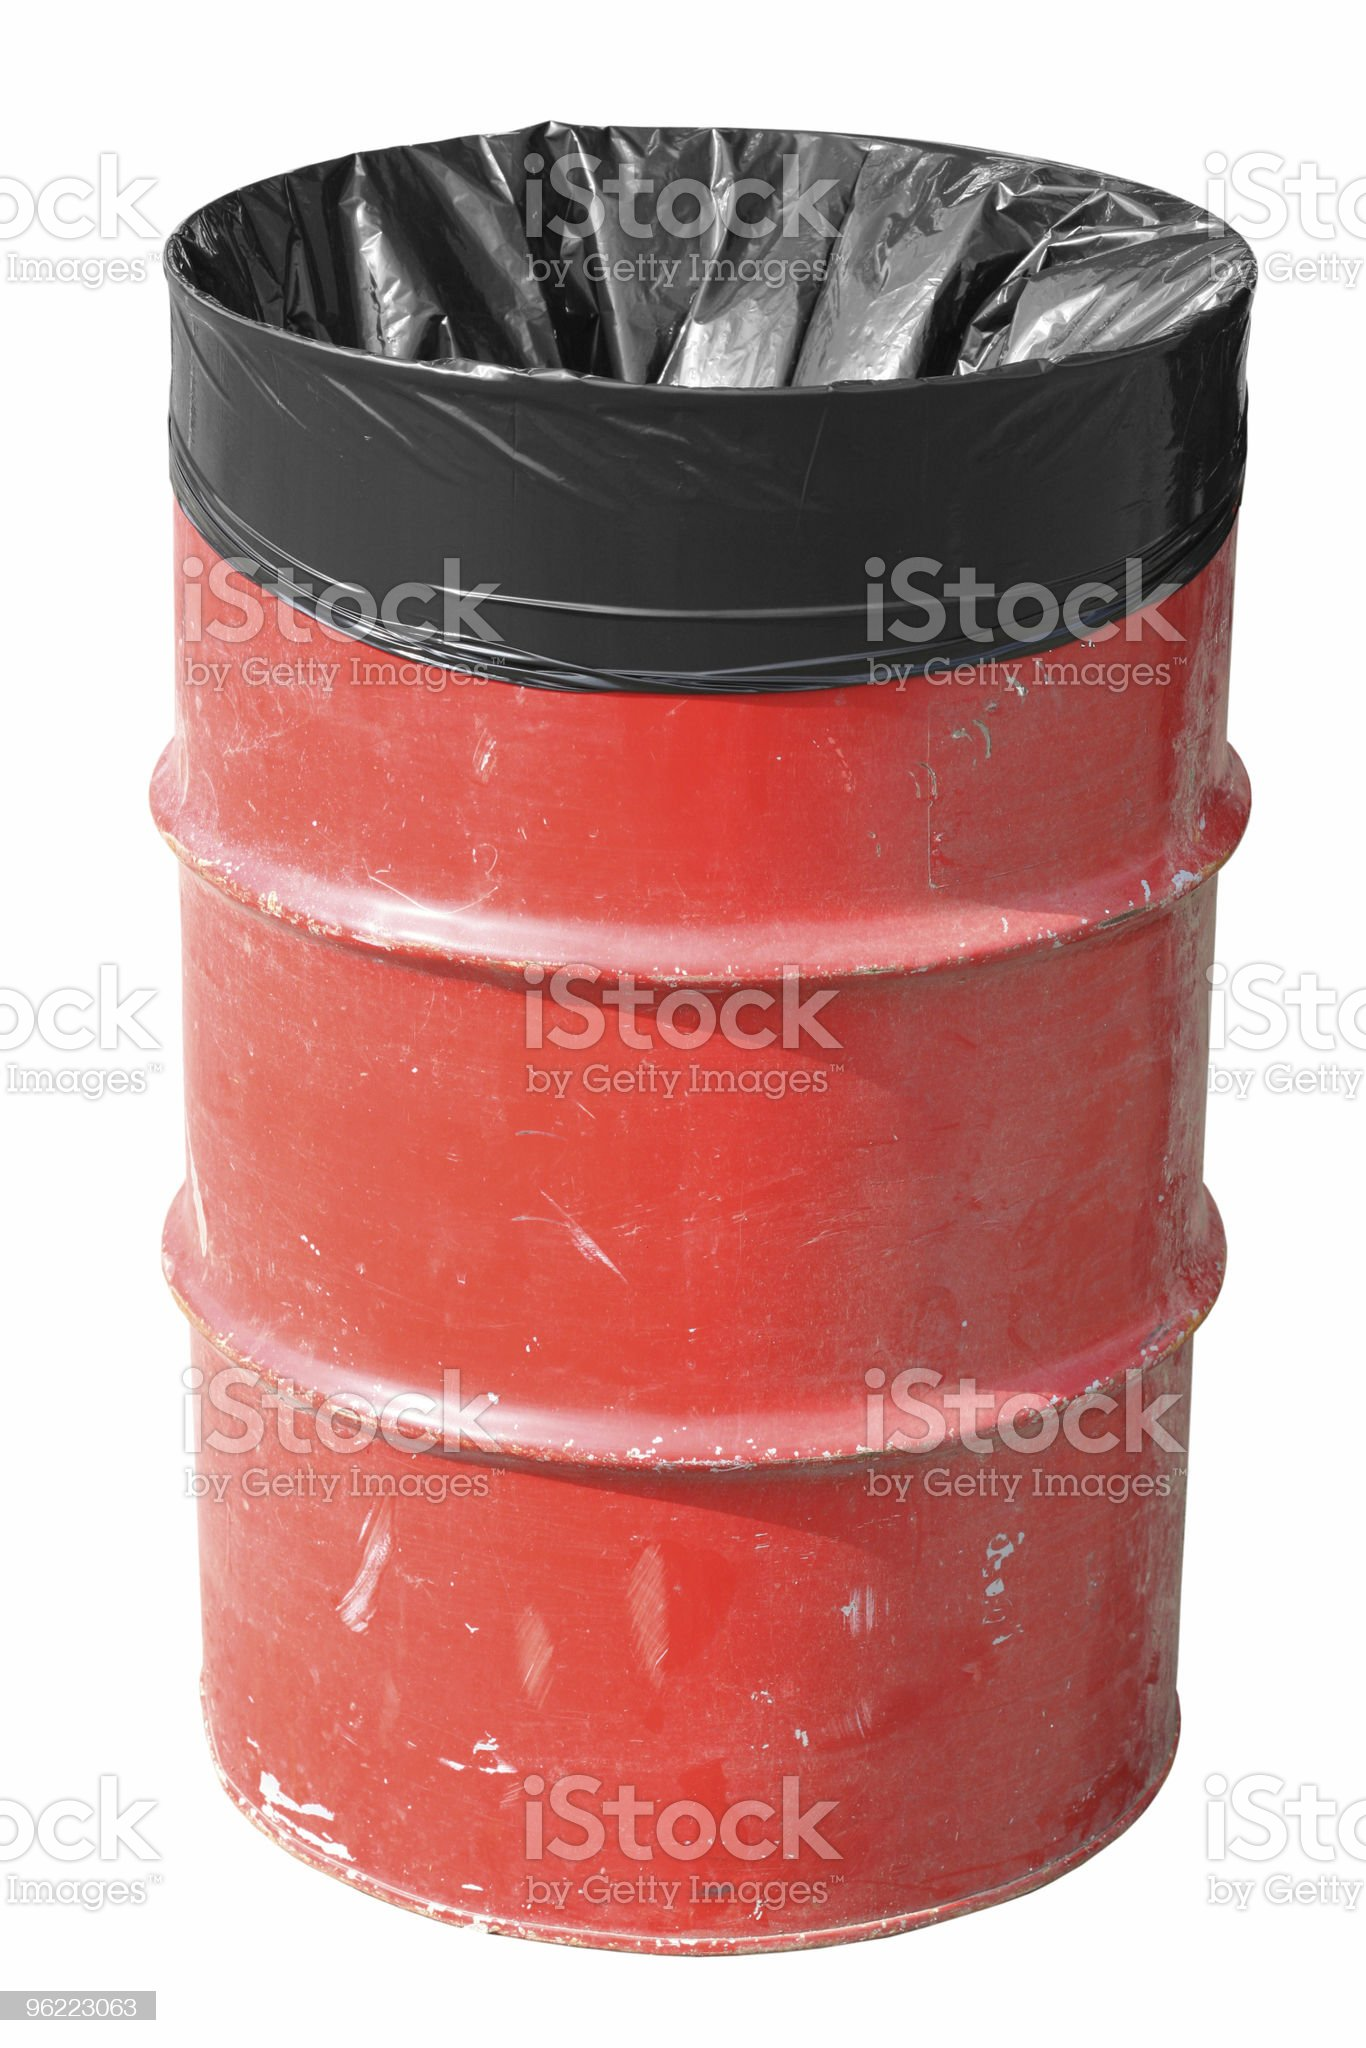 red Garbage Can royalty-free stock photo